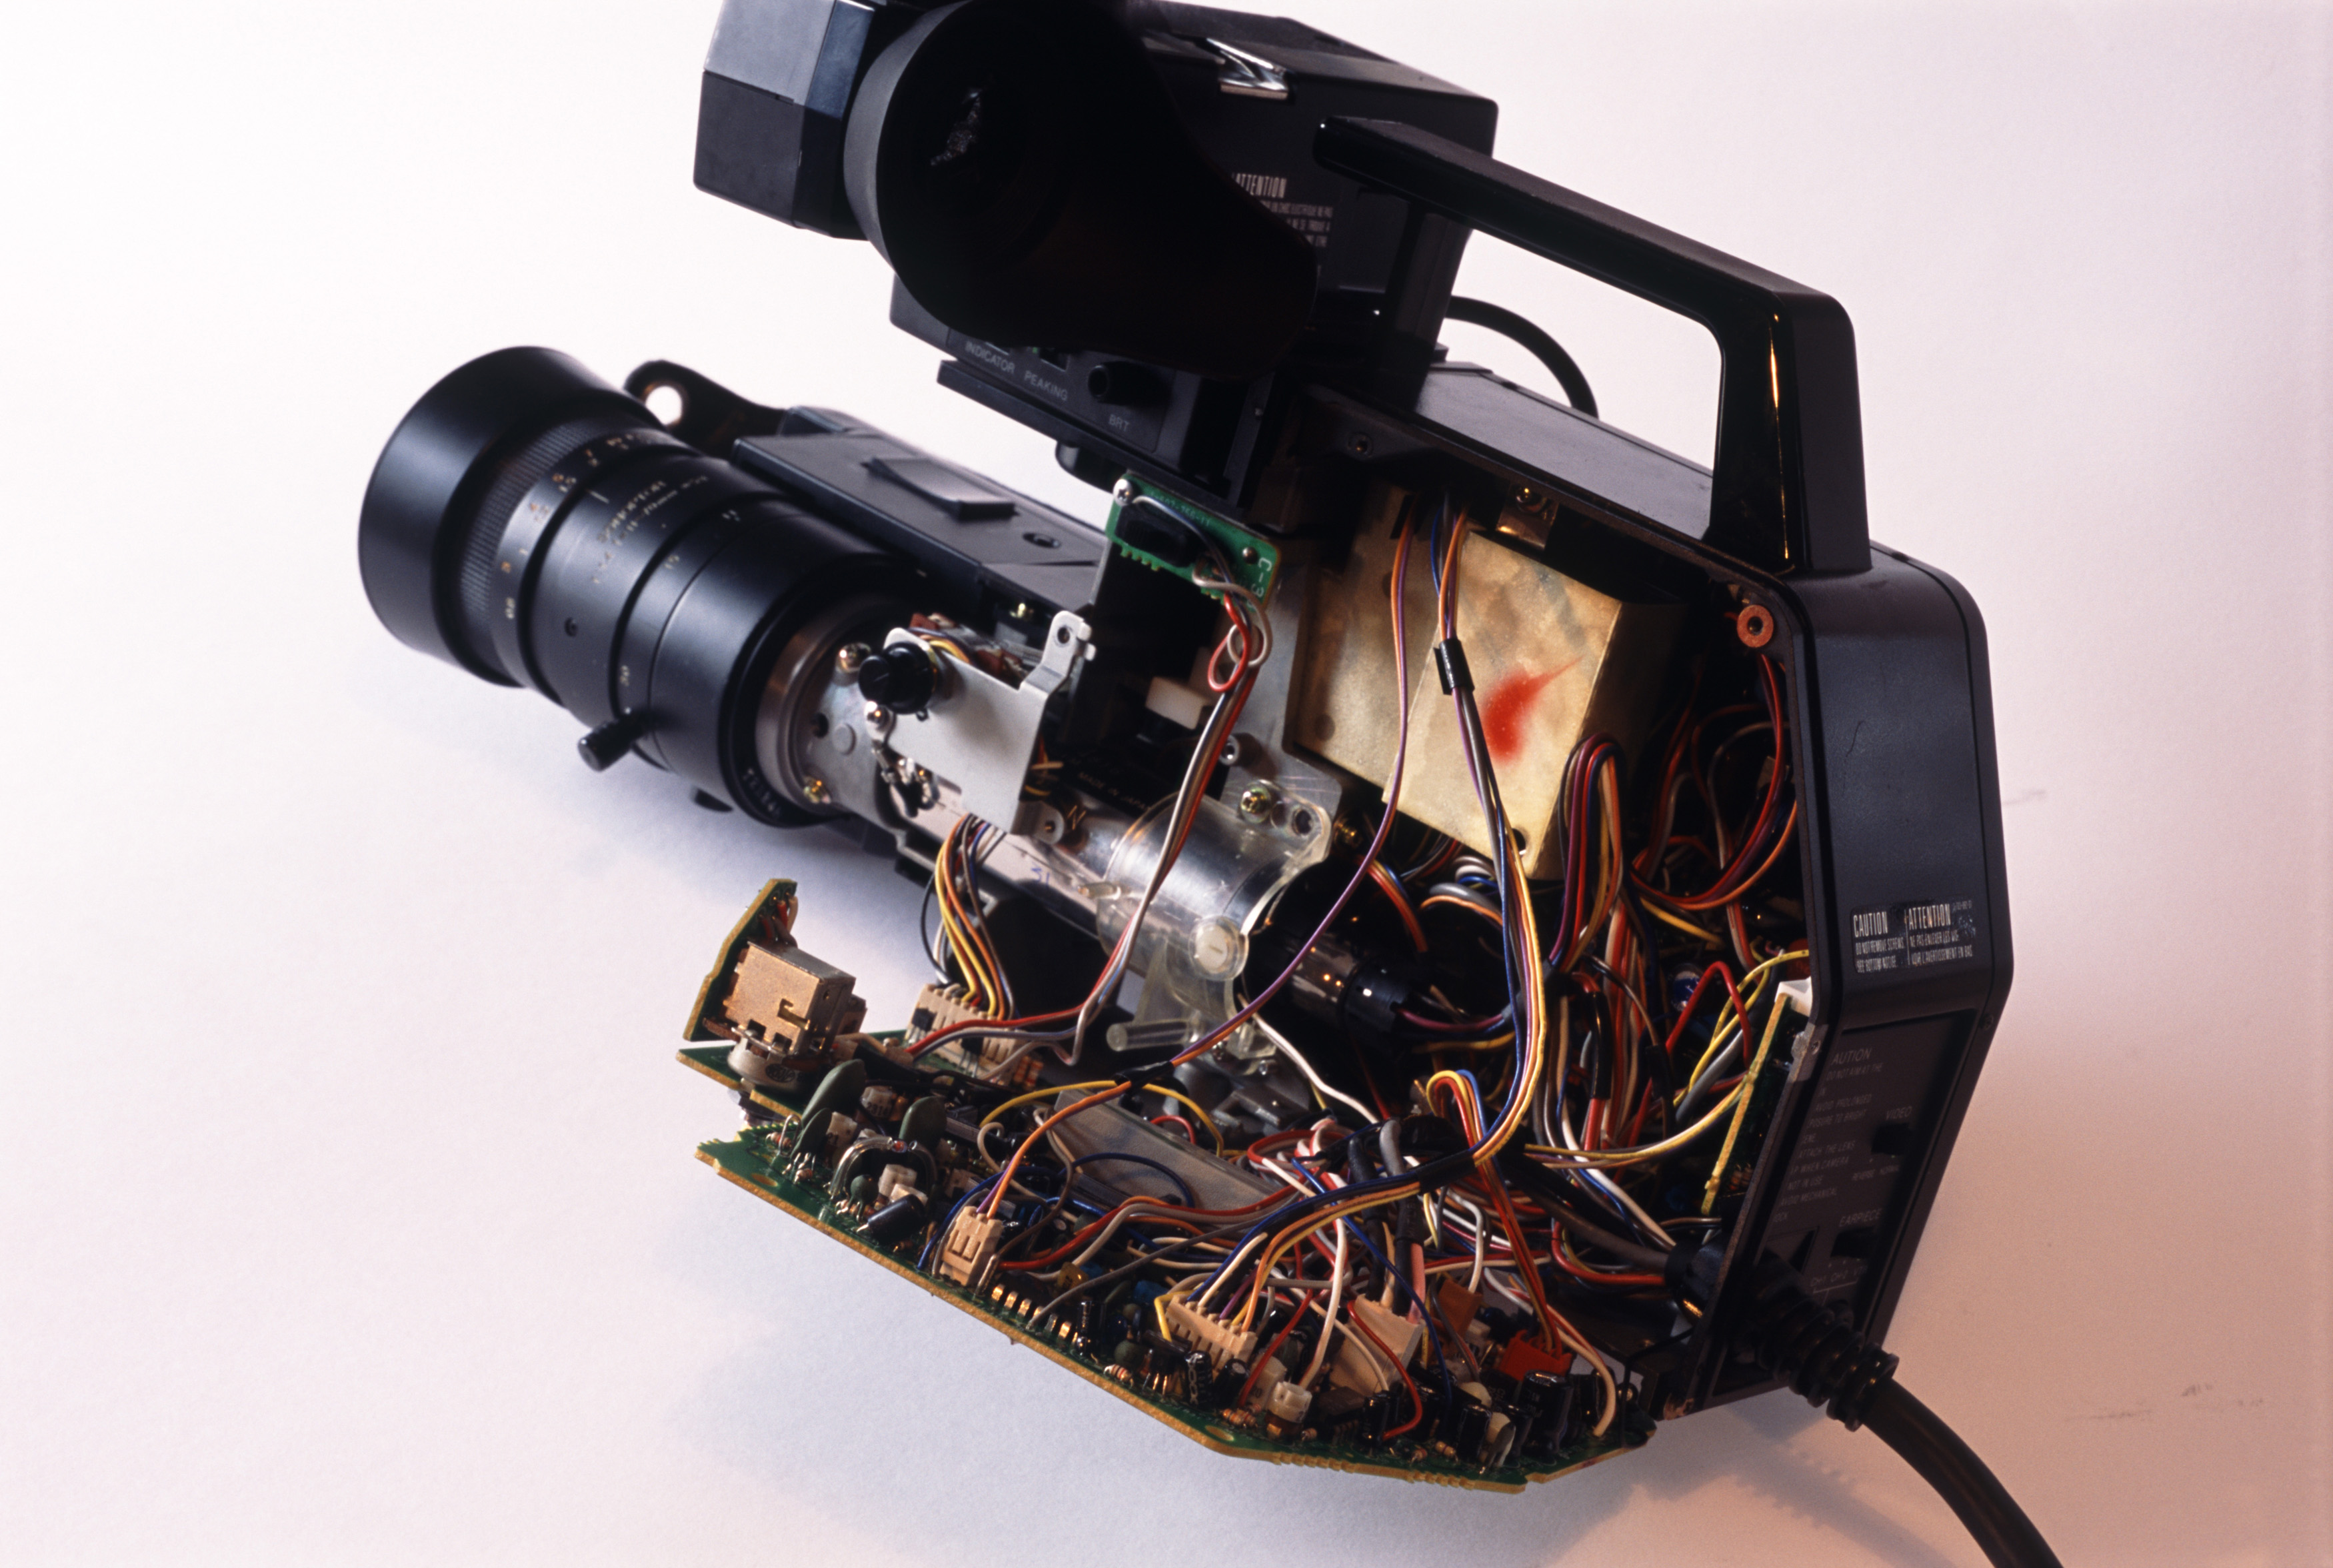 a video camera from the days before CCD sensors, containing a glass videcon tube to create a video image